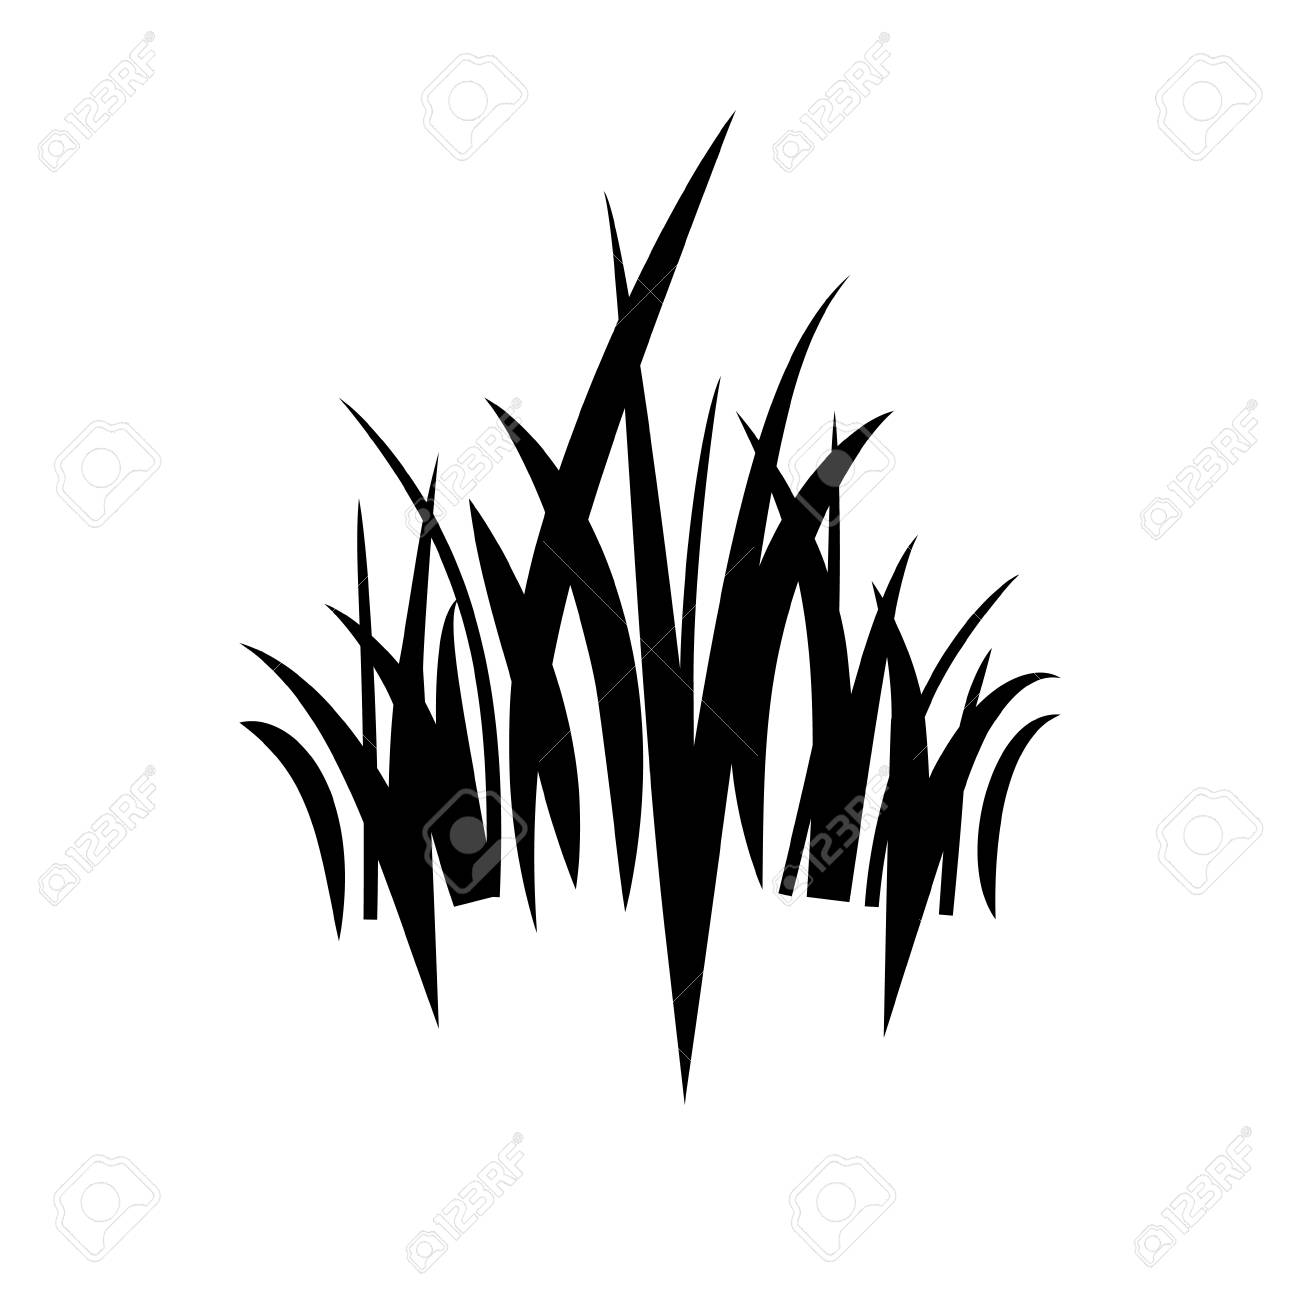 logo grass icon royalty free cliparts vectors and stock illustration image 80333605 logo grass icon